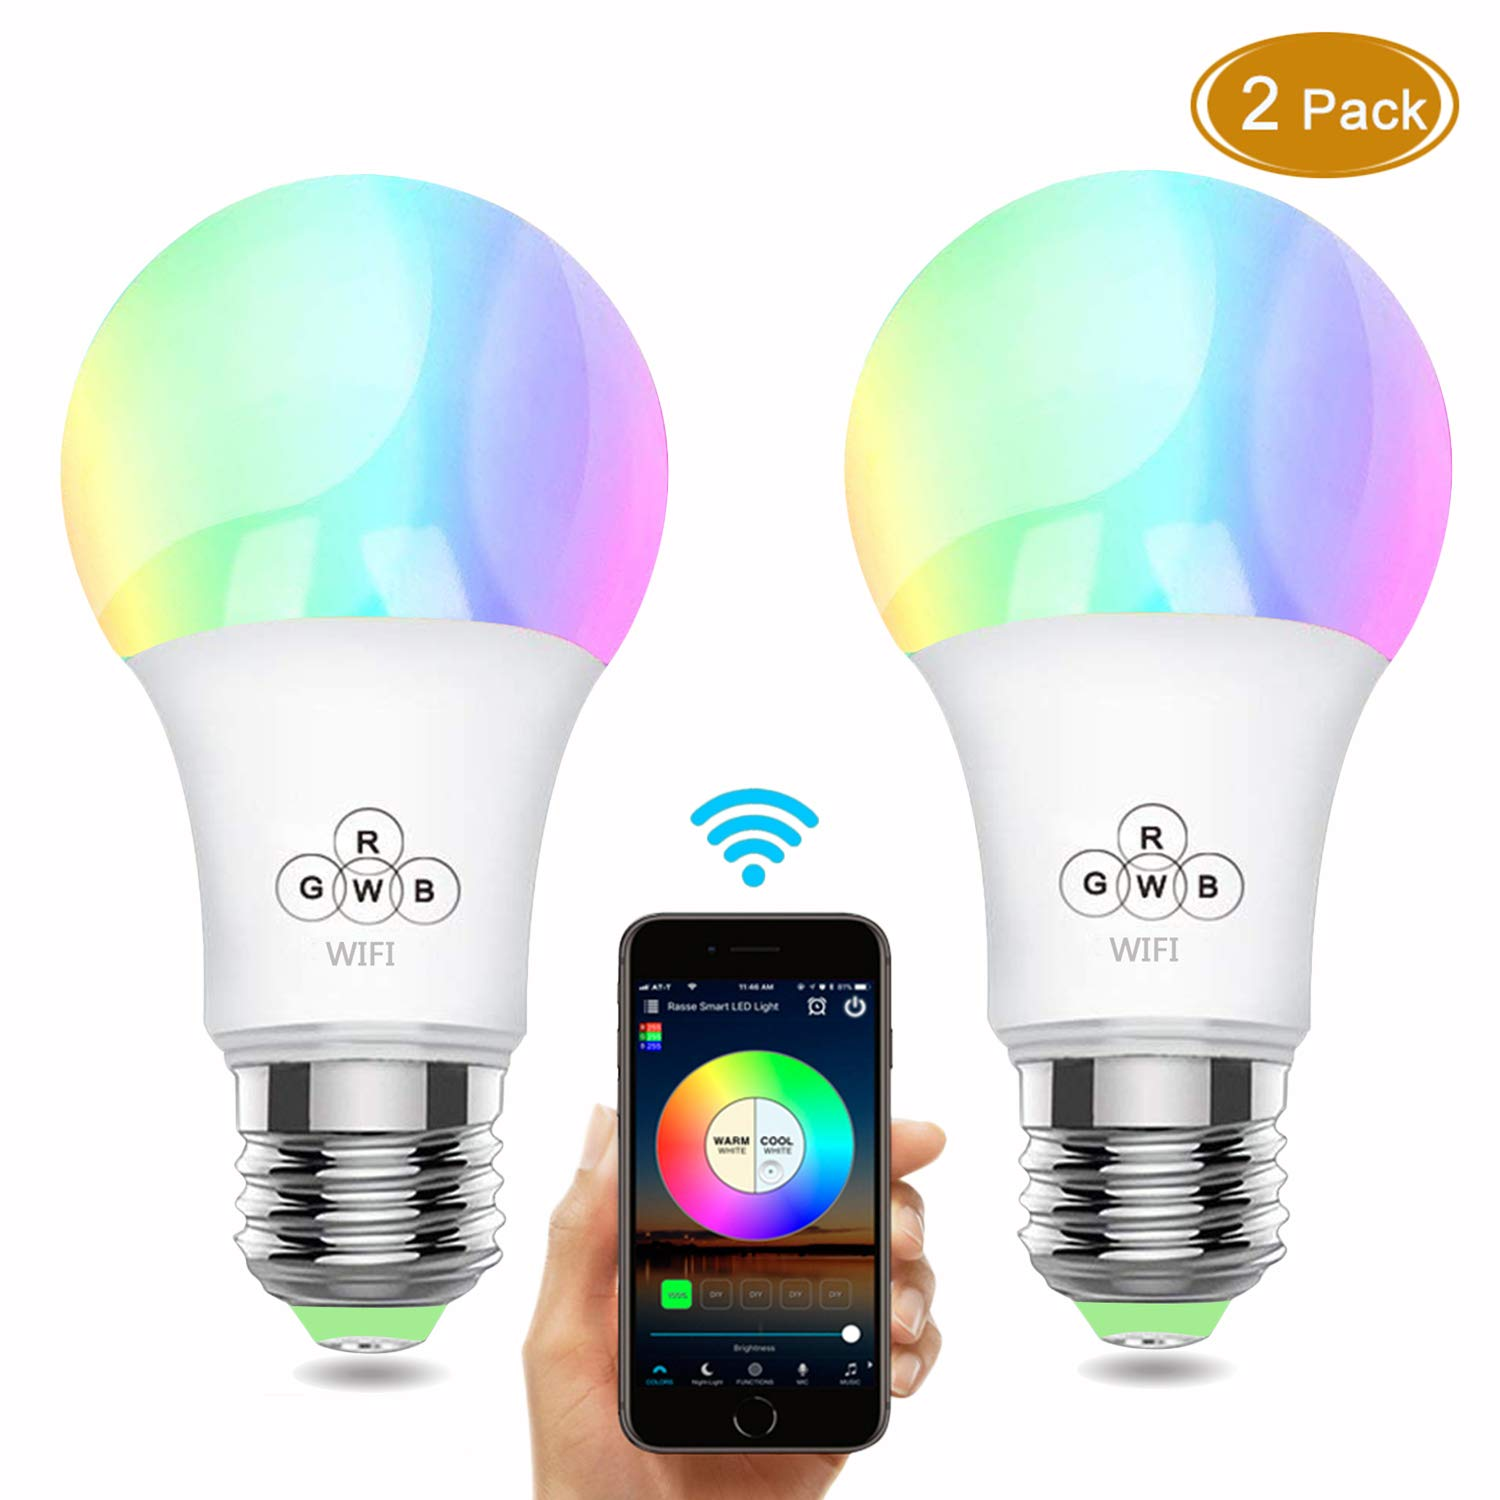 Rasse Smart LED Light Bulb, WiFi Light Bulbs 40W Equivalent, Dimmable RGB Multicolor LED Smart Light Bulb, Wake-up Lights Smart Led Light Bulbs Works with Amazon Echo Alexa/Goole Home Assist (2 Pack)